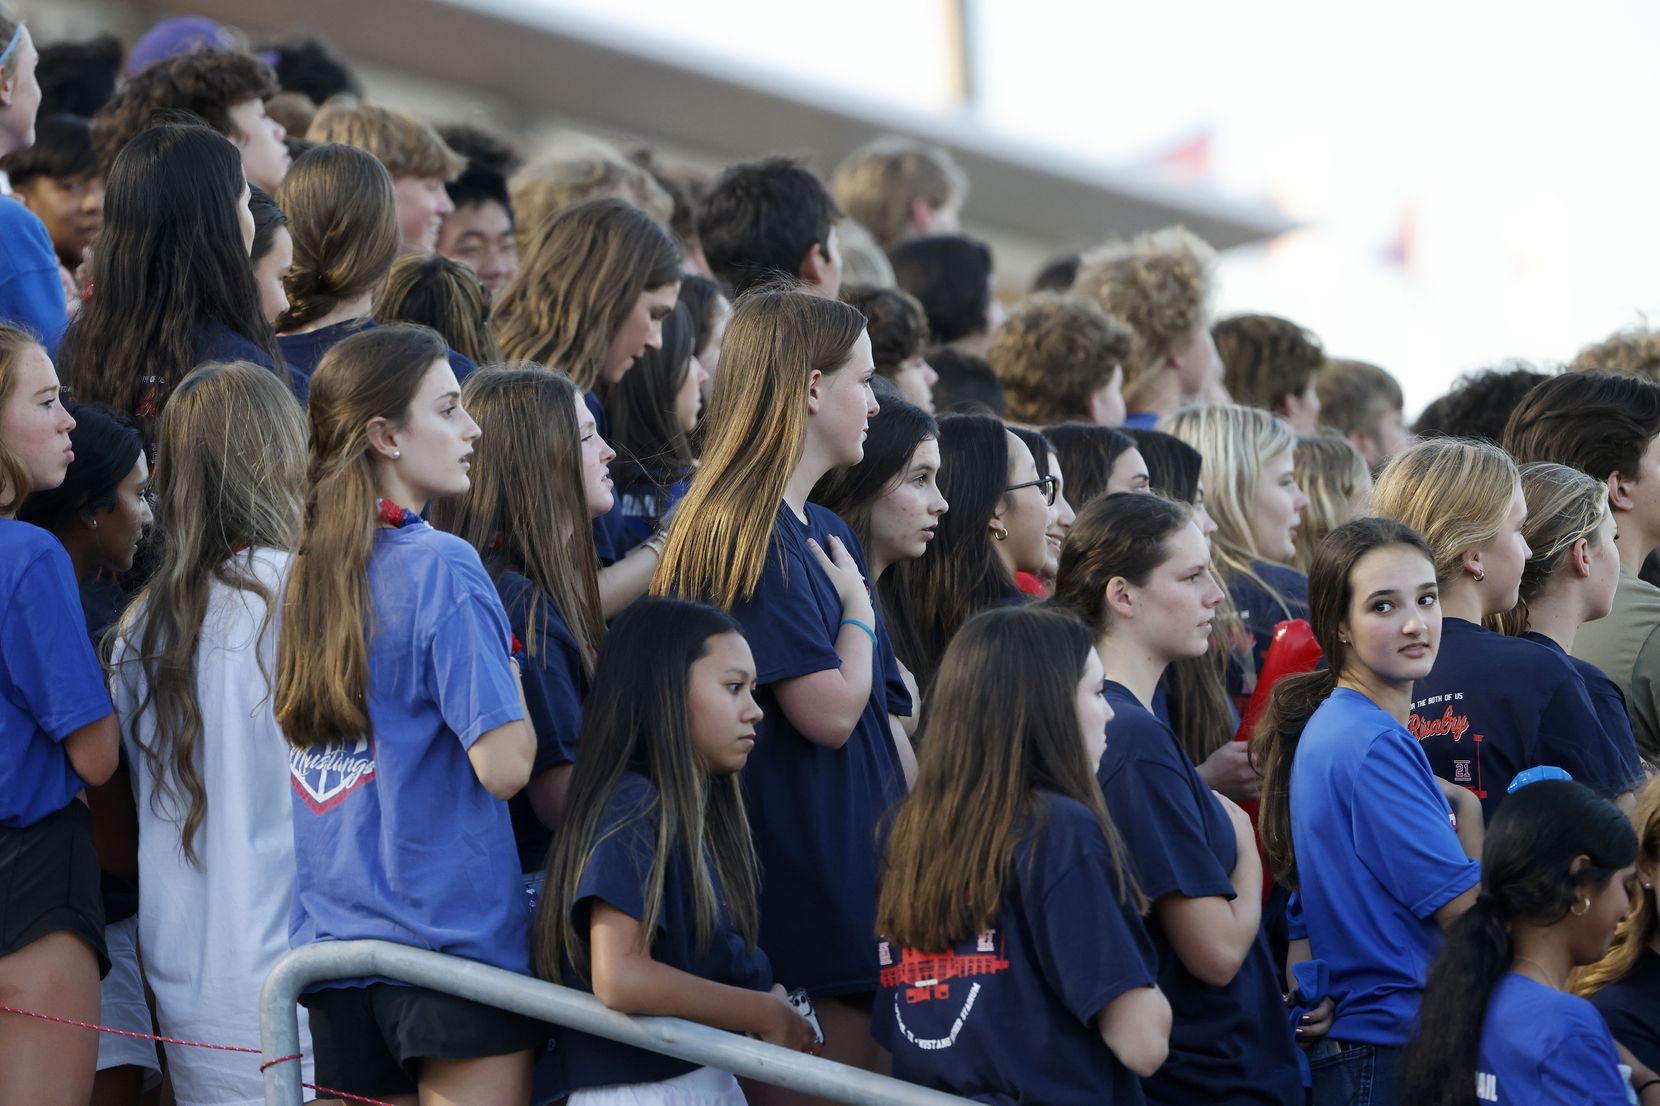 The Grapevine student section as they played Colleyville Heritage during the first half of their high school football game in Grapevine, Texas on Aug. 27, 2021. (Michael Ainsworth/Special Contributor)